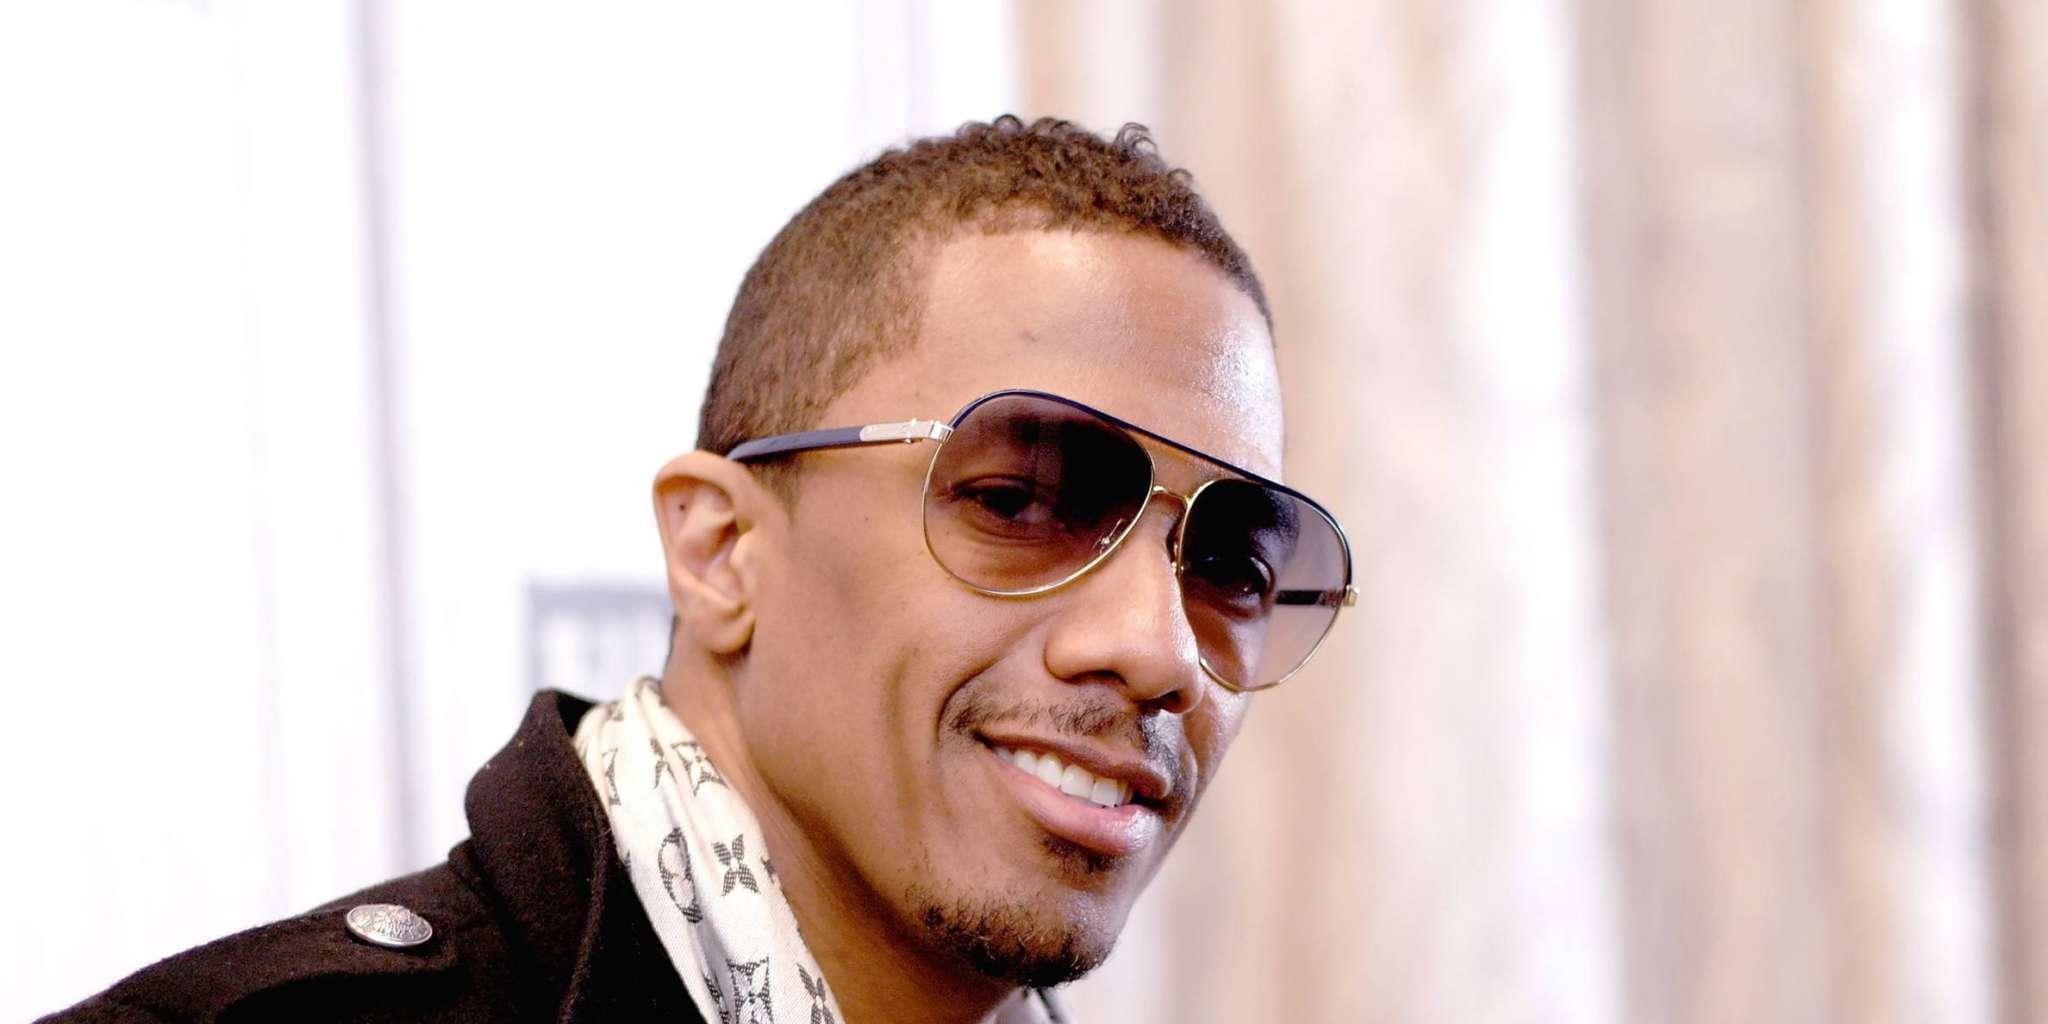 Nick Cannon Addresses The Backlash He Recently Received Following His Apology - Fans Freak Out That He Might Do Something Reckless After These Messages!